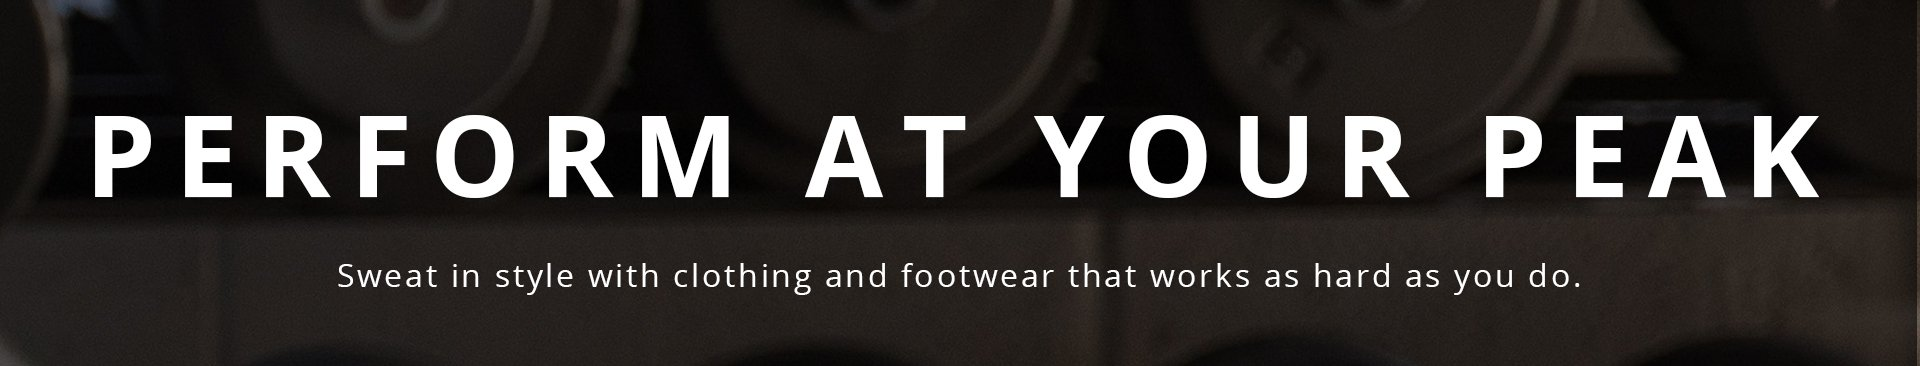 Perform at your peak. Sweat in style with clothing and footwear that works as hard as you do.